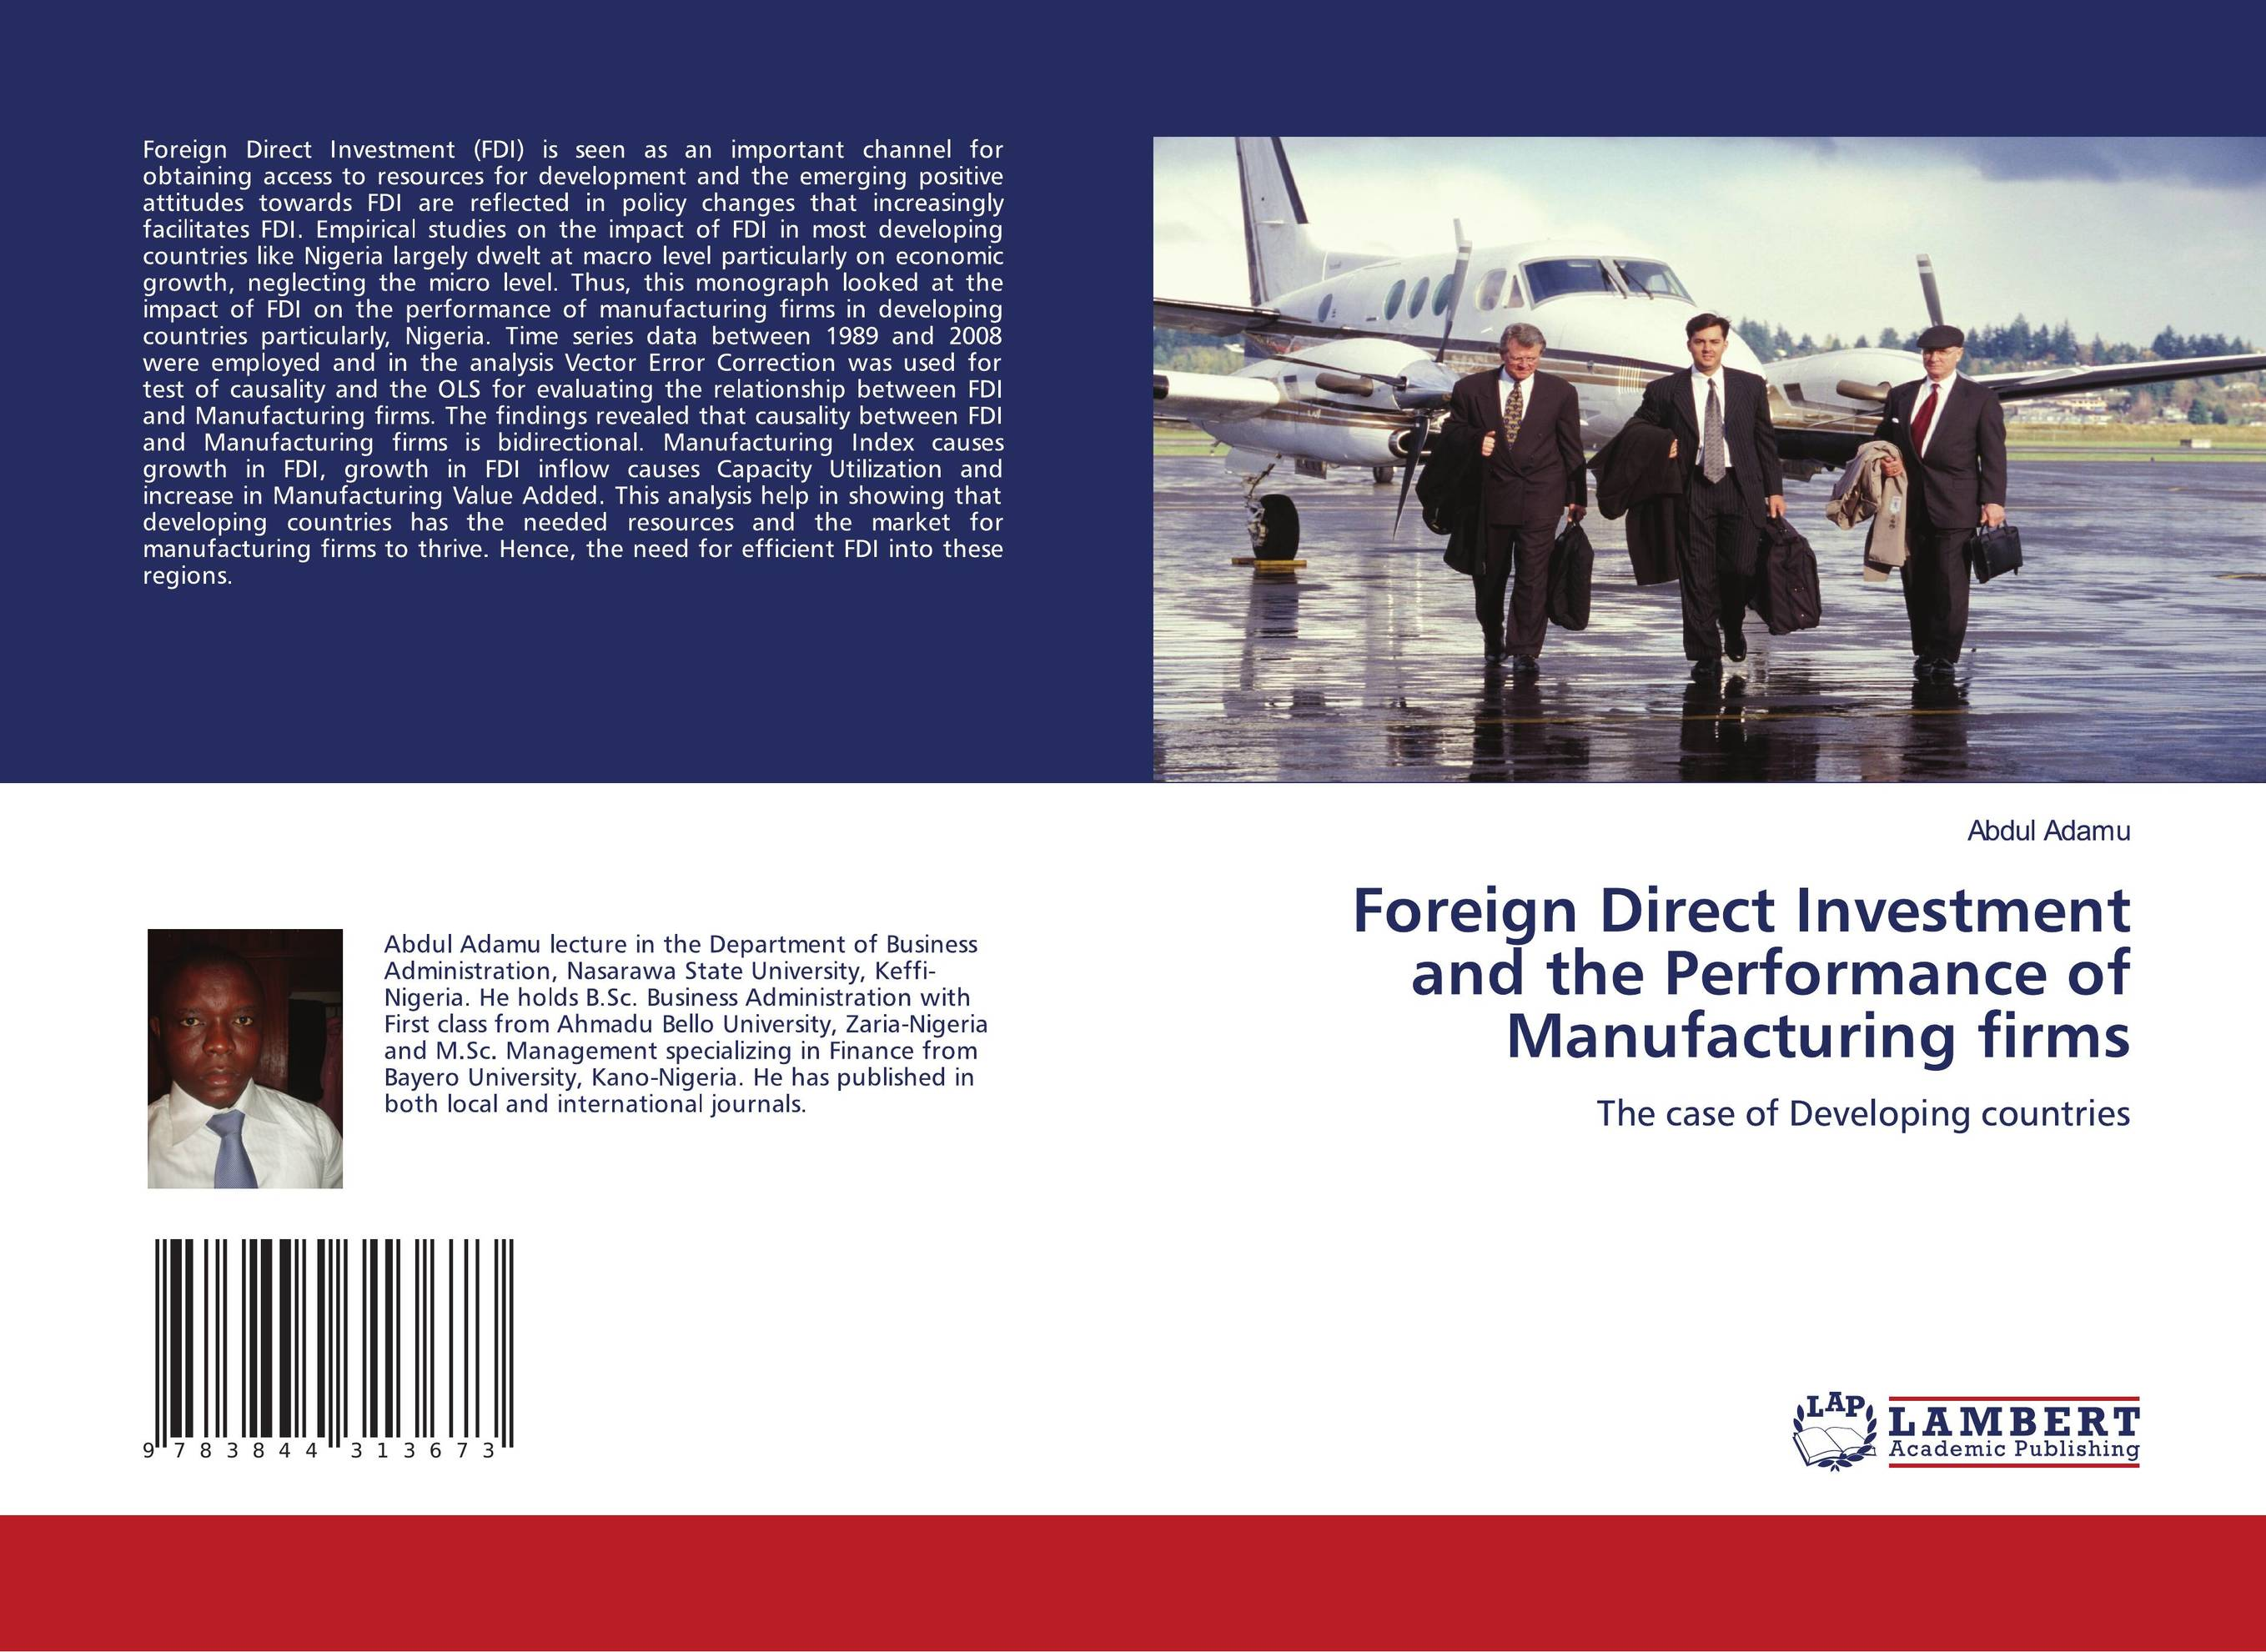 impact of corruption on fdi Collection the impact of corruption on fdi: the case of post-socialist europe by stefan domonkos submitted to central european university department of political science.